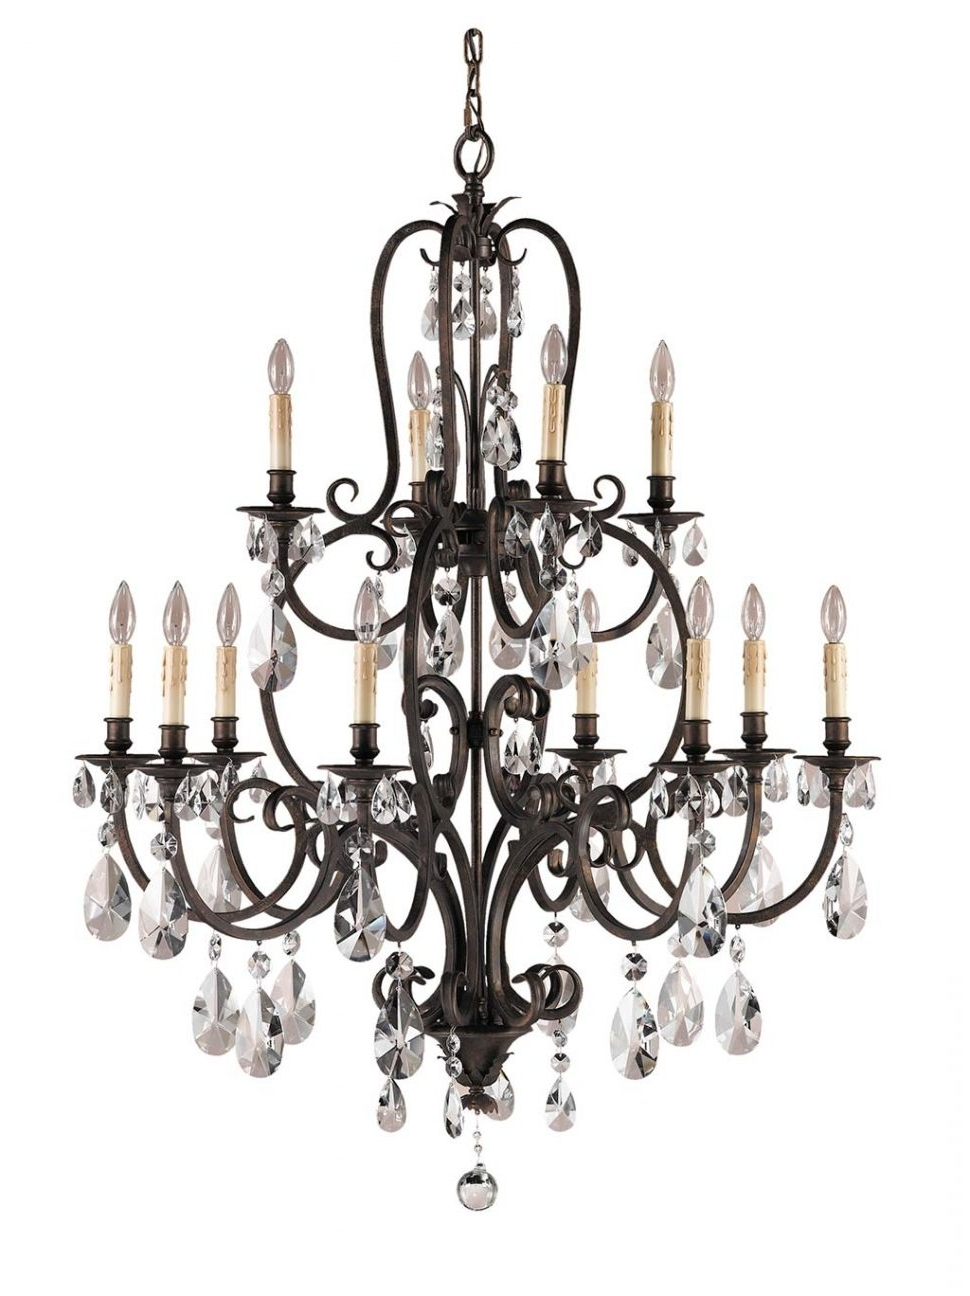 Trendy Chandeliers Design : Marvelous Formidable Murray Feiss Chandeliers Throughout Feiss Chandeliers (View 13 of 15)